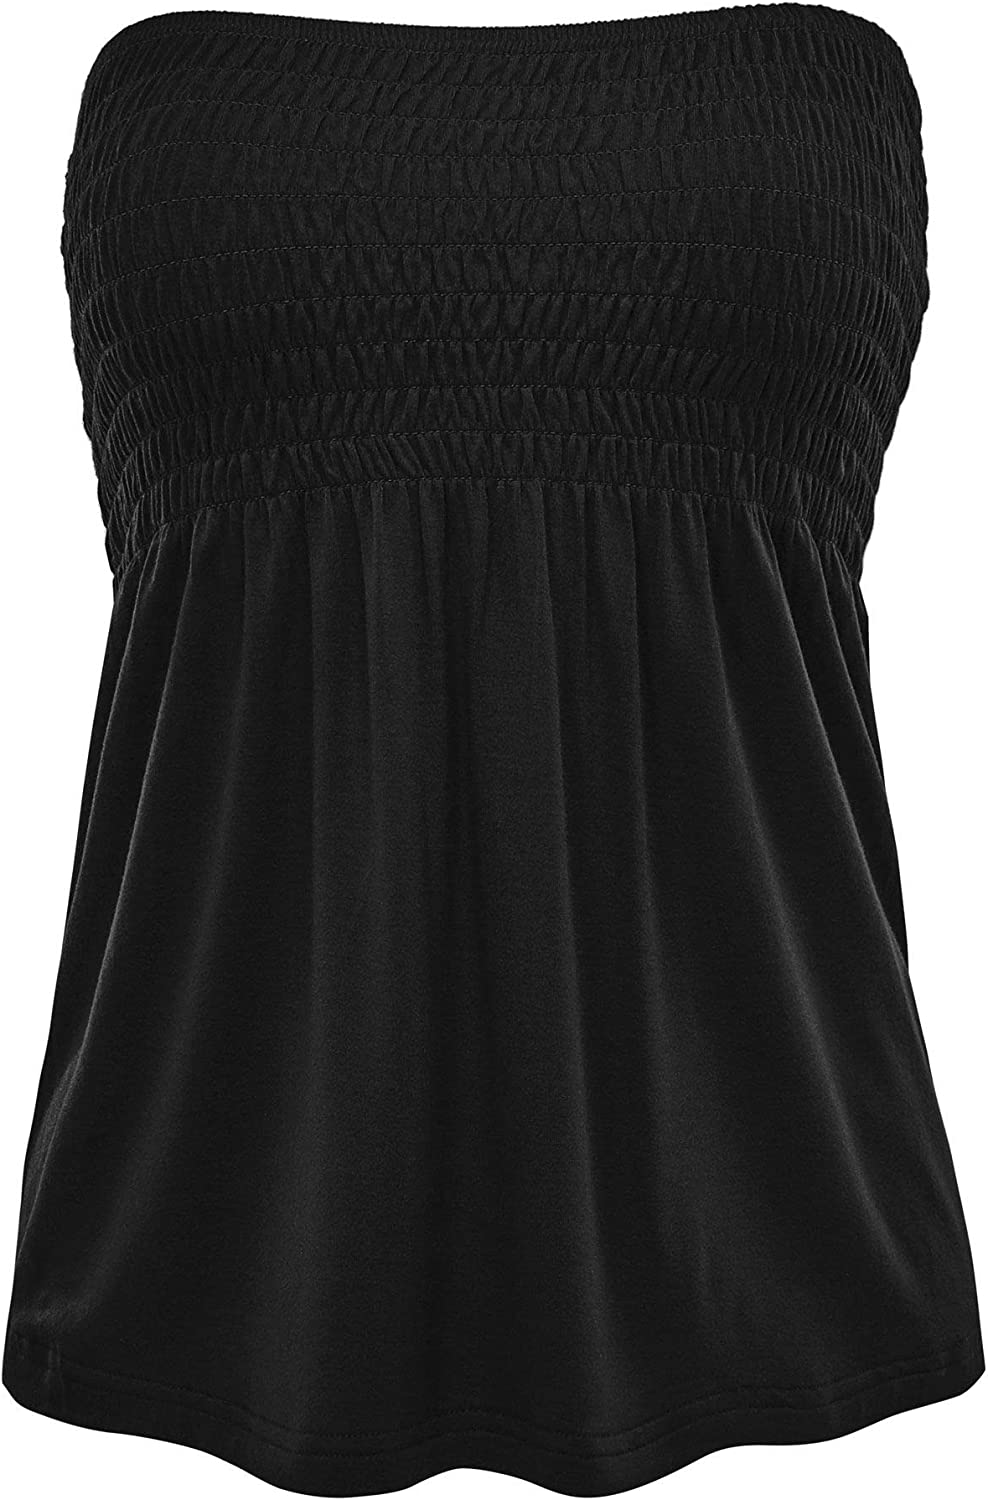 FashionMille Womens Casual Strapless Babydoll Tube top Shirt Blouse Tank Cami